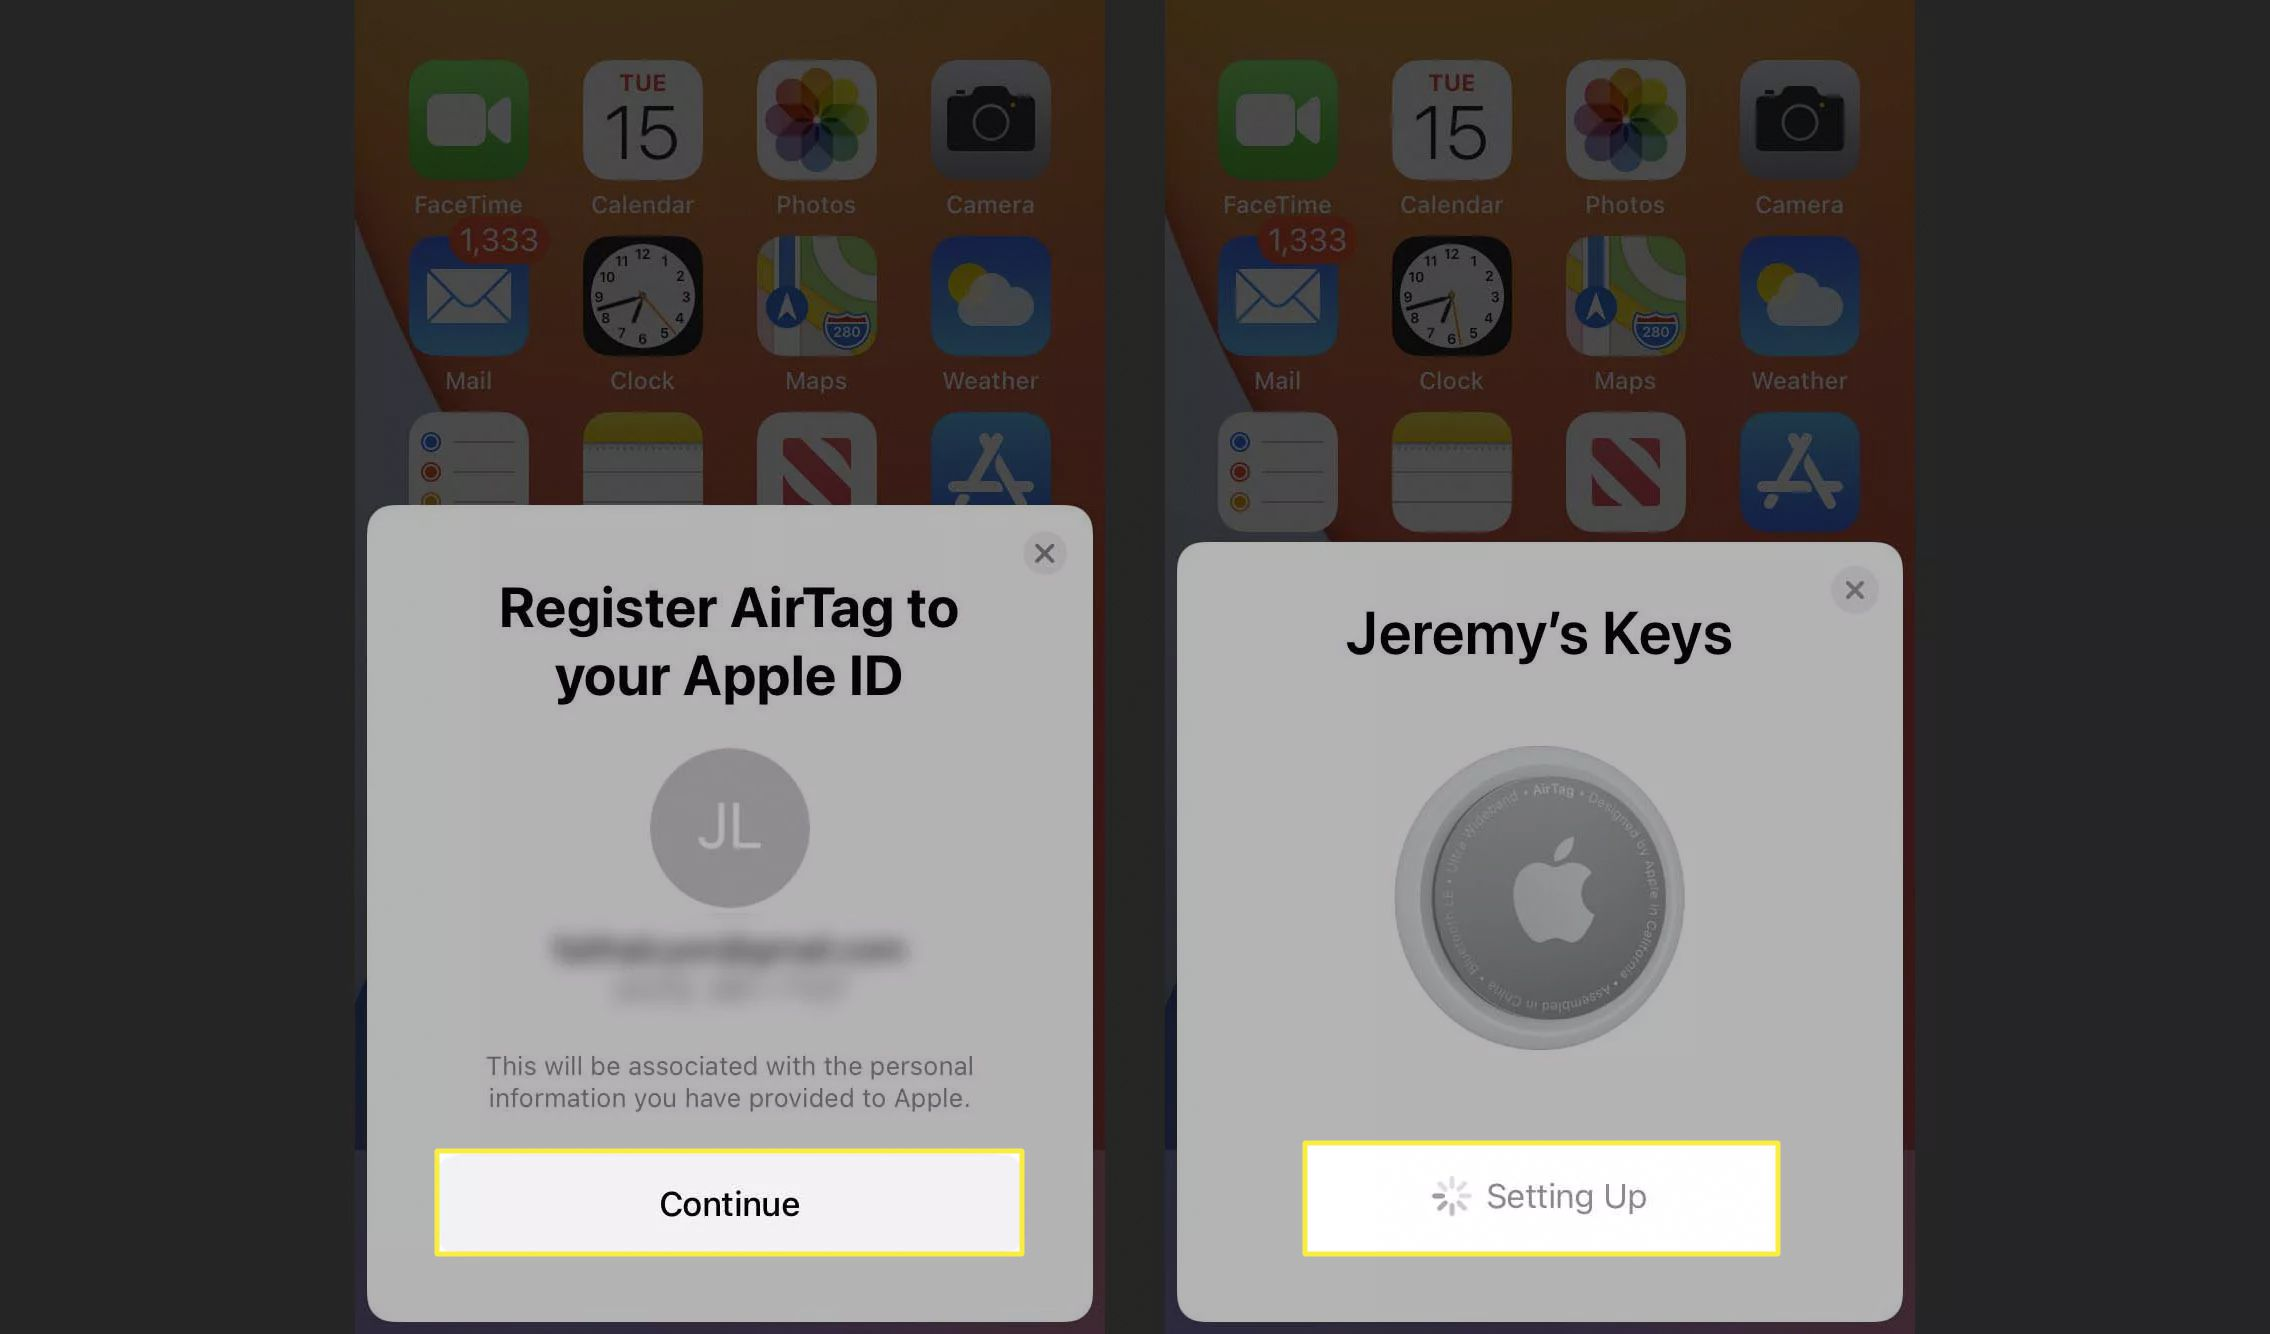 Final steps to set up AirTags on iPhone.